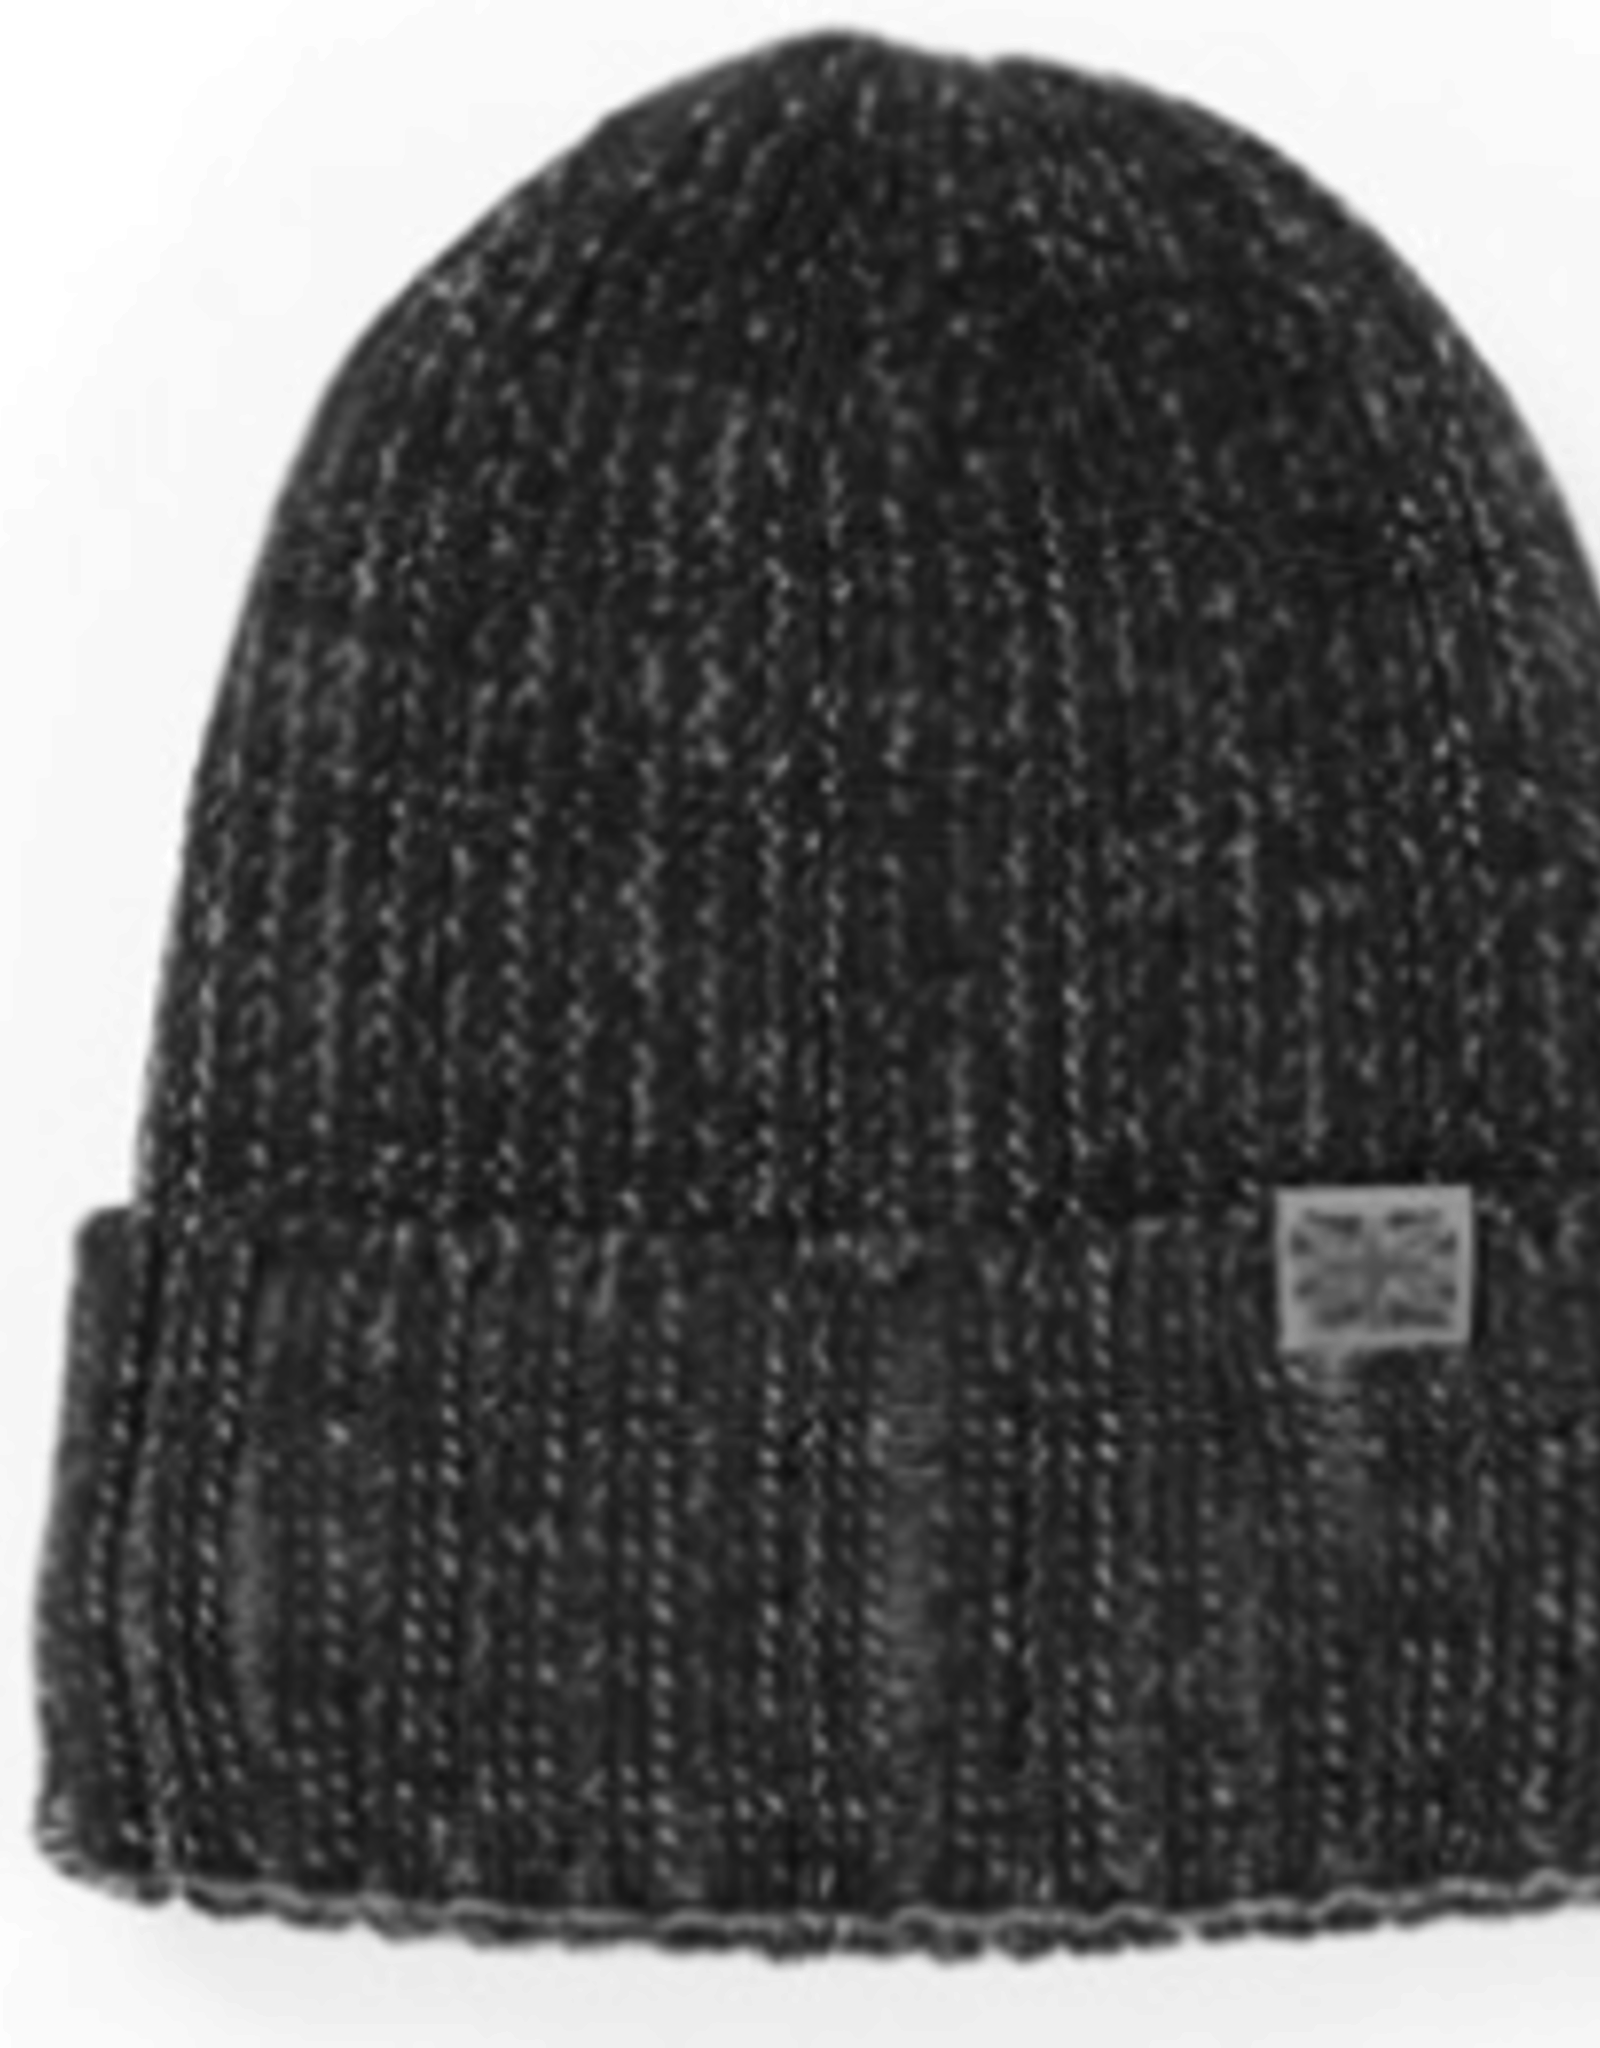 Britts Knits Men's Knit Hat